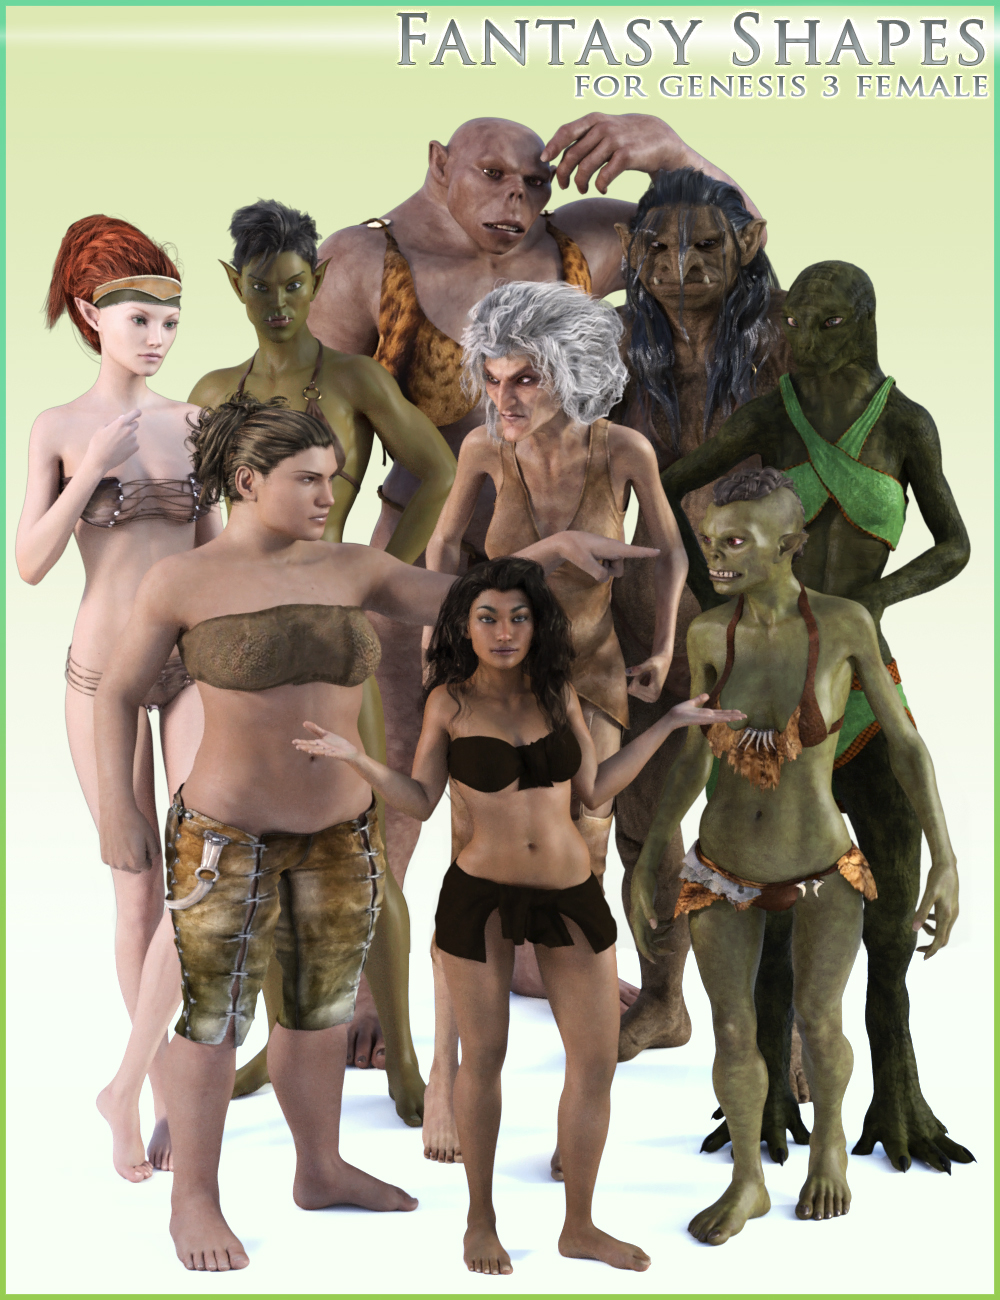 HFS Fantasy Shapes for Genesis 3 Female(s) by: DarioFish, 3D Models by Daz 3D